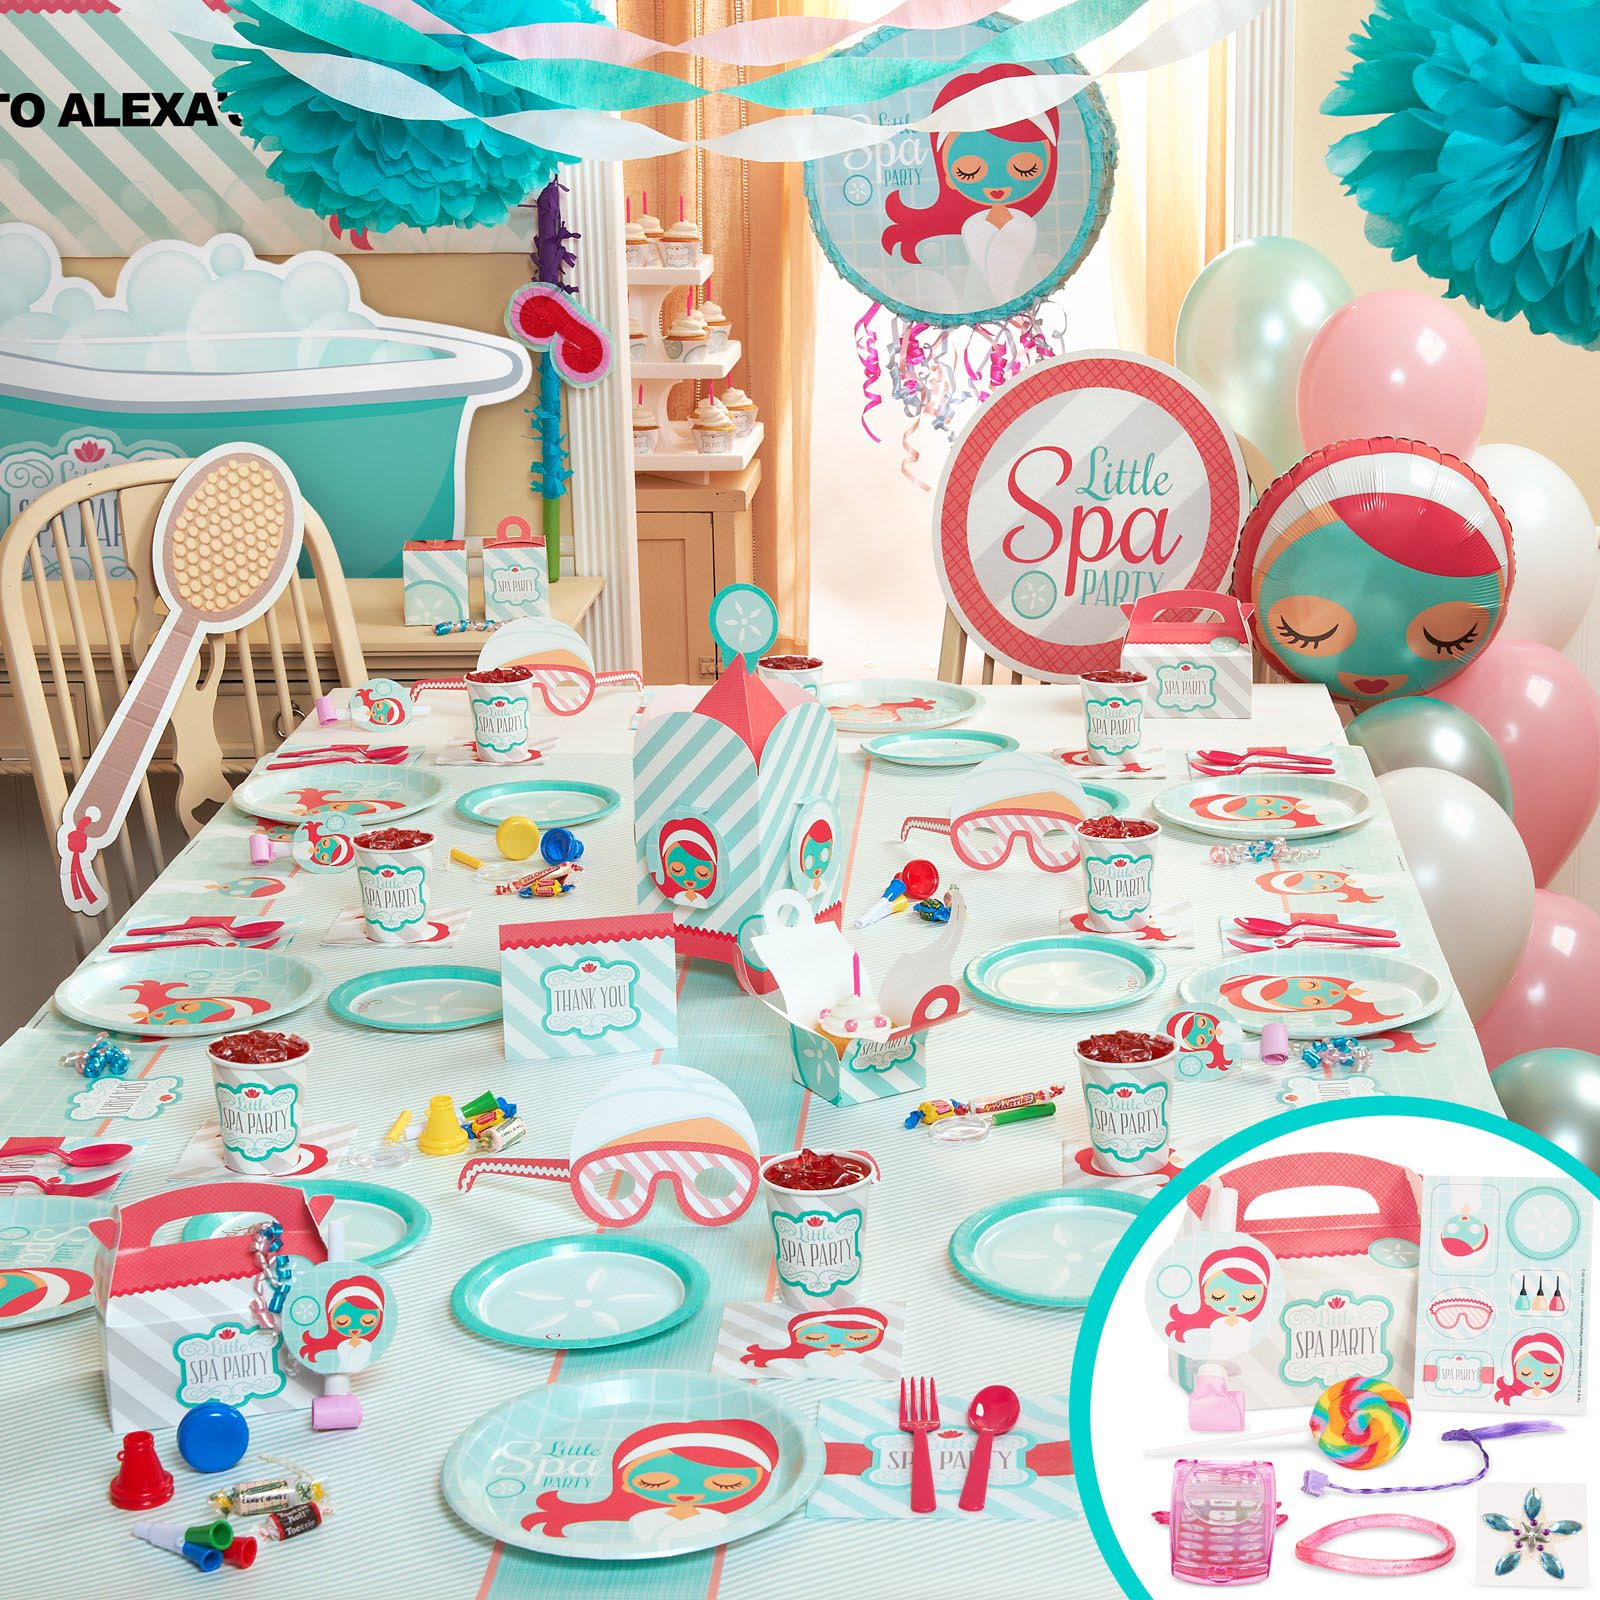 Spa party decorations ideas home party ideas for Home party decorations ideas